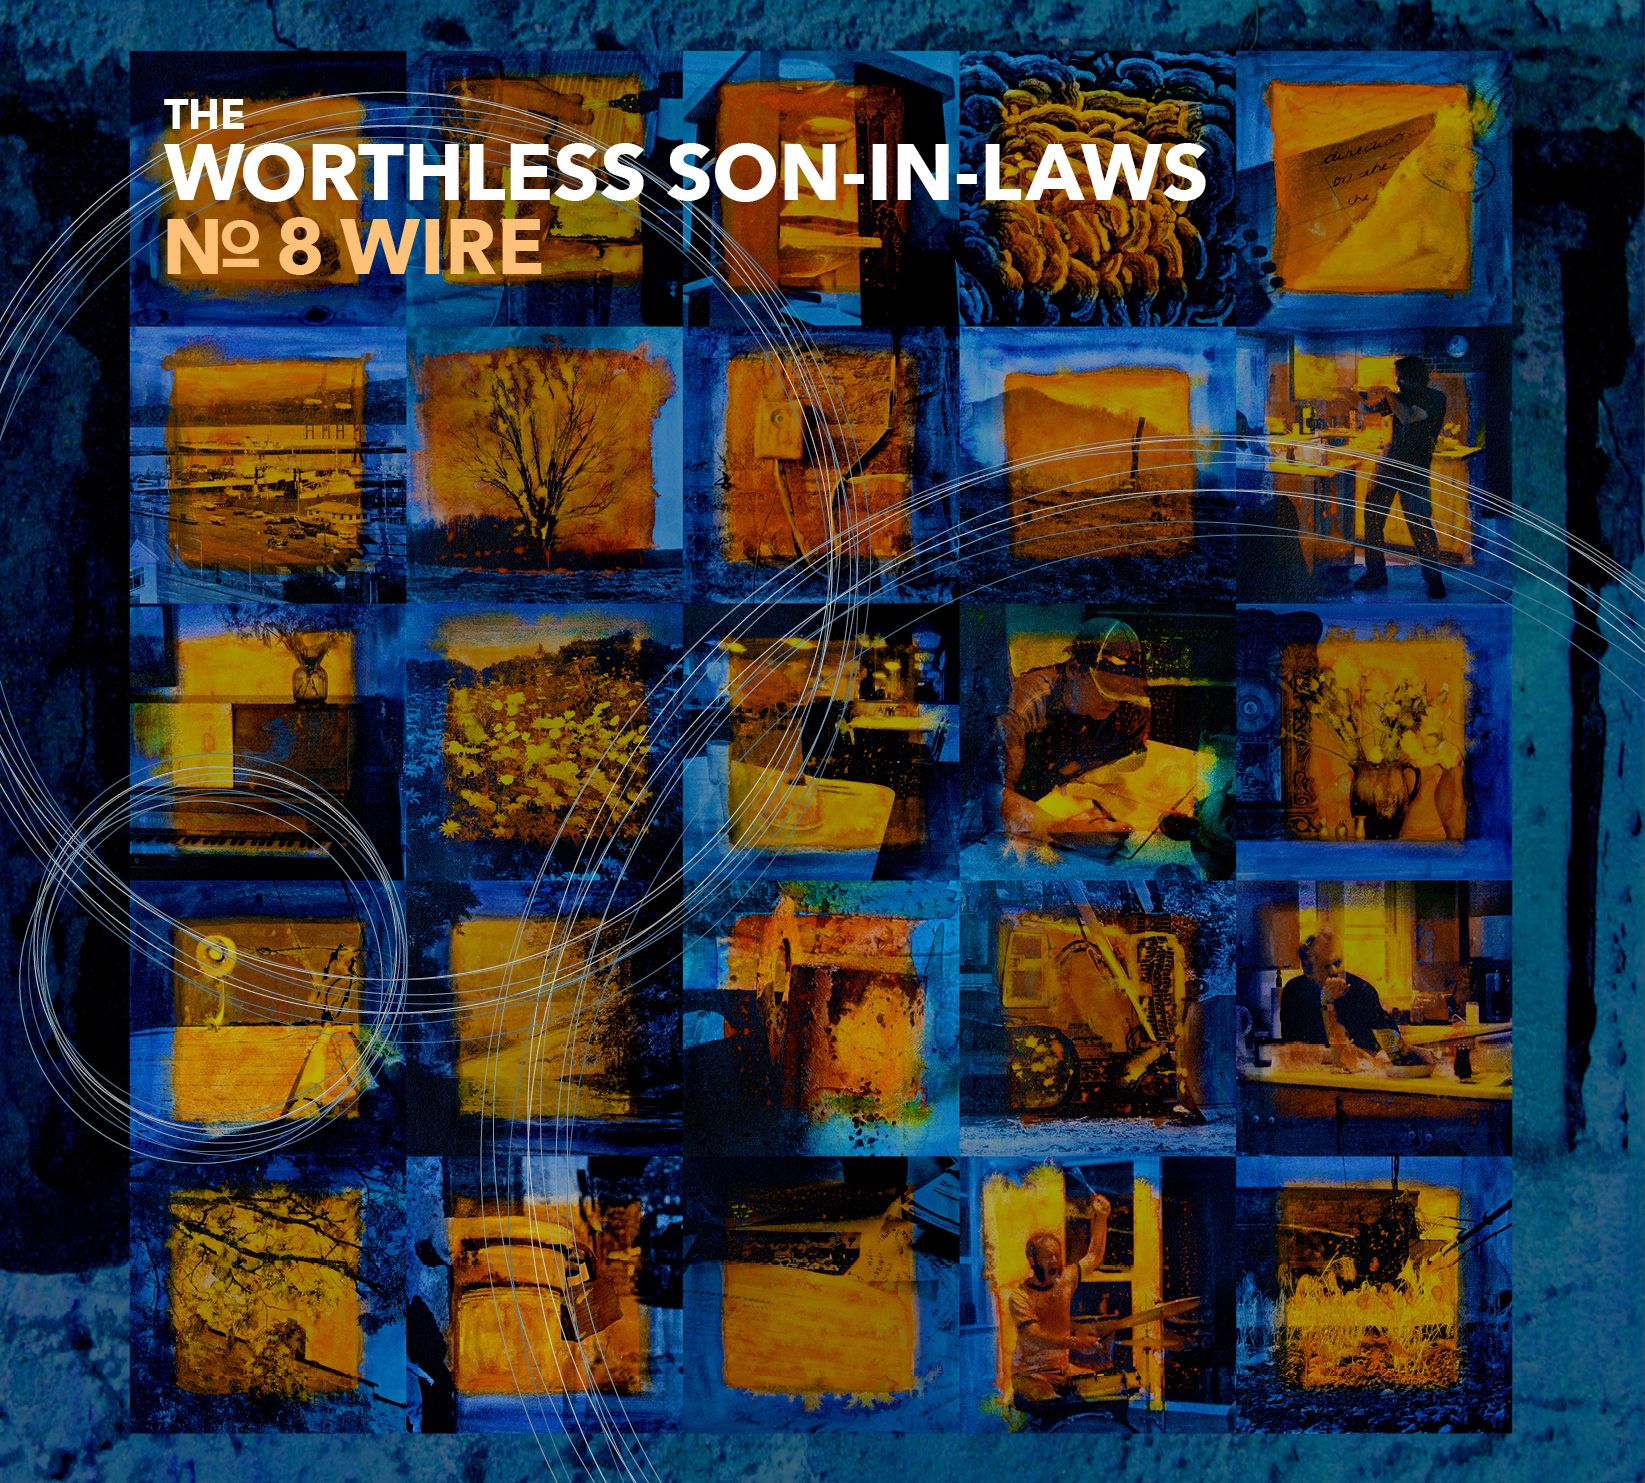 worthless_son-in-laws_no8wire